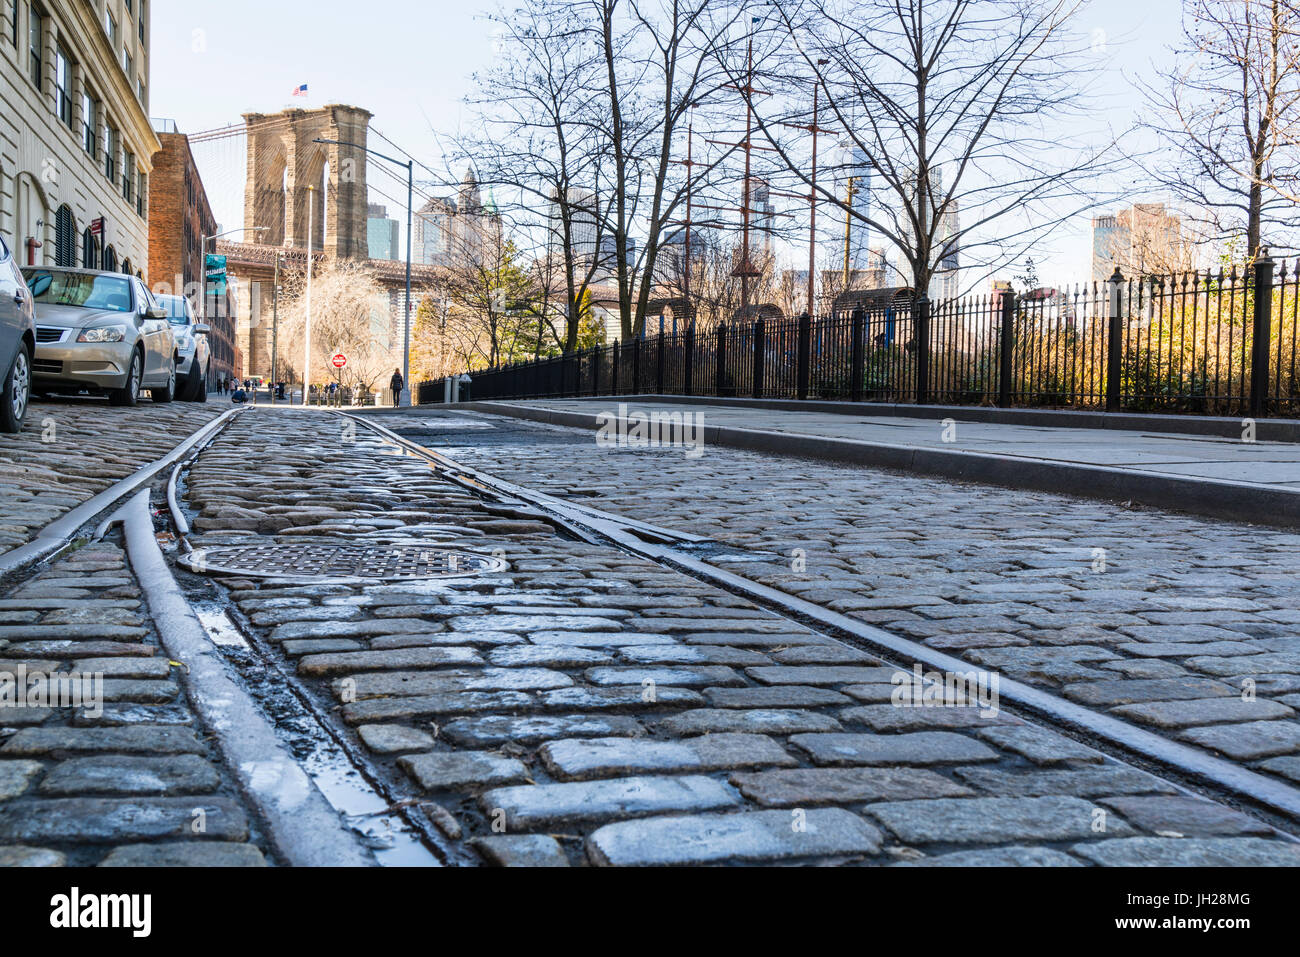 Old rail tracks and cobbled street in Dumbo Historic District, Brooklyn, New York City, United States of America, - Stock Image